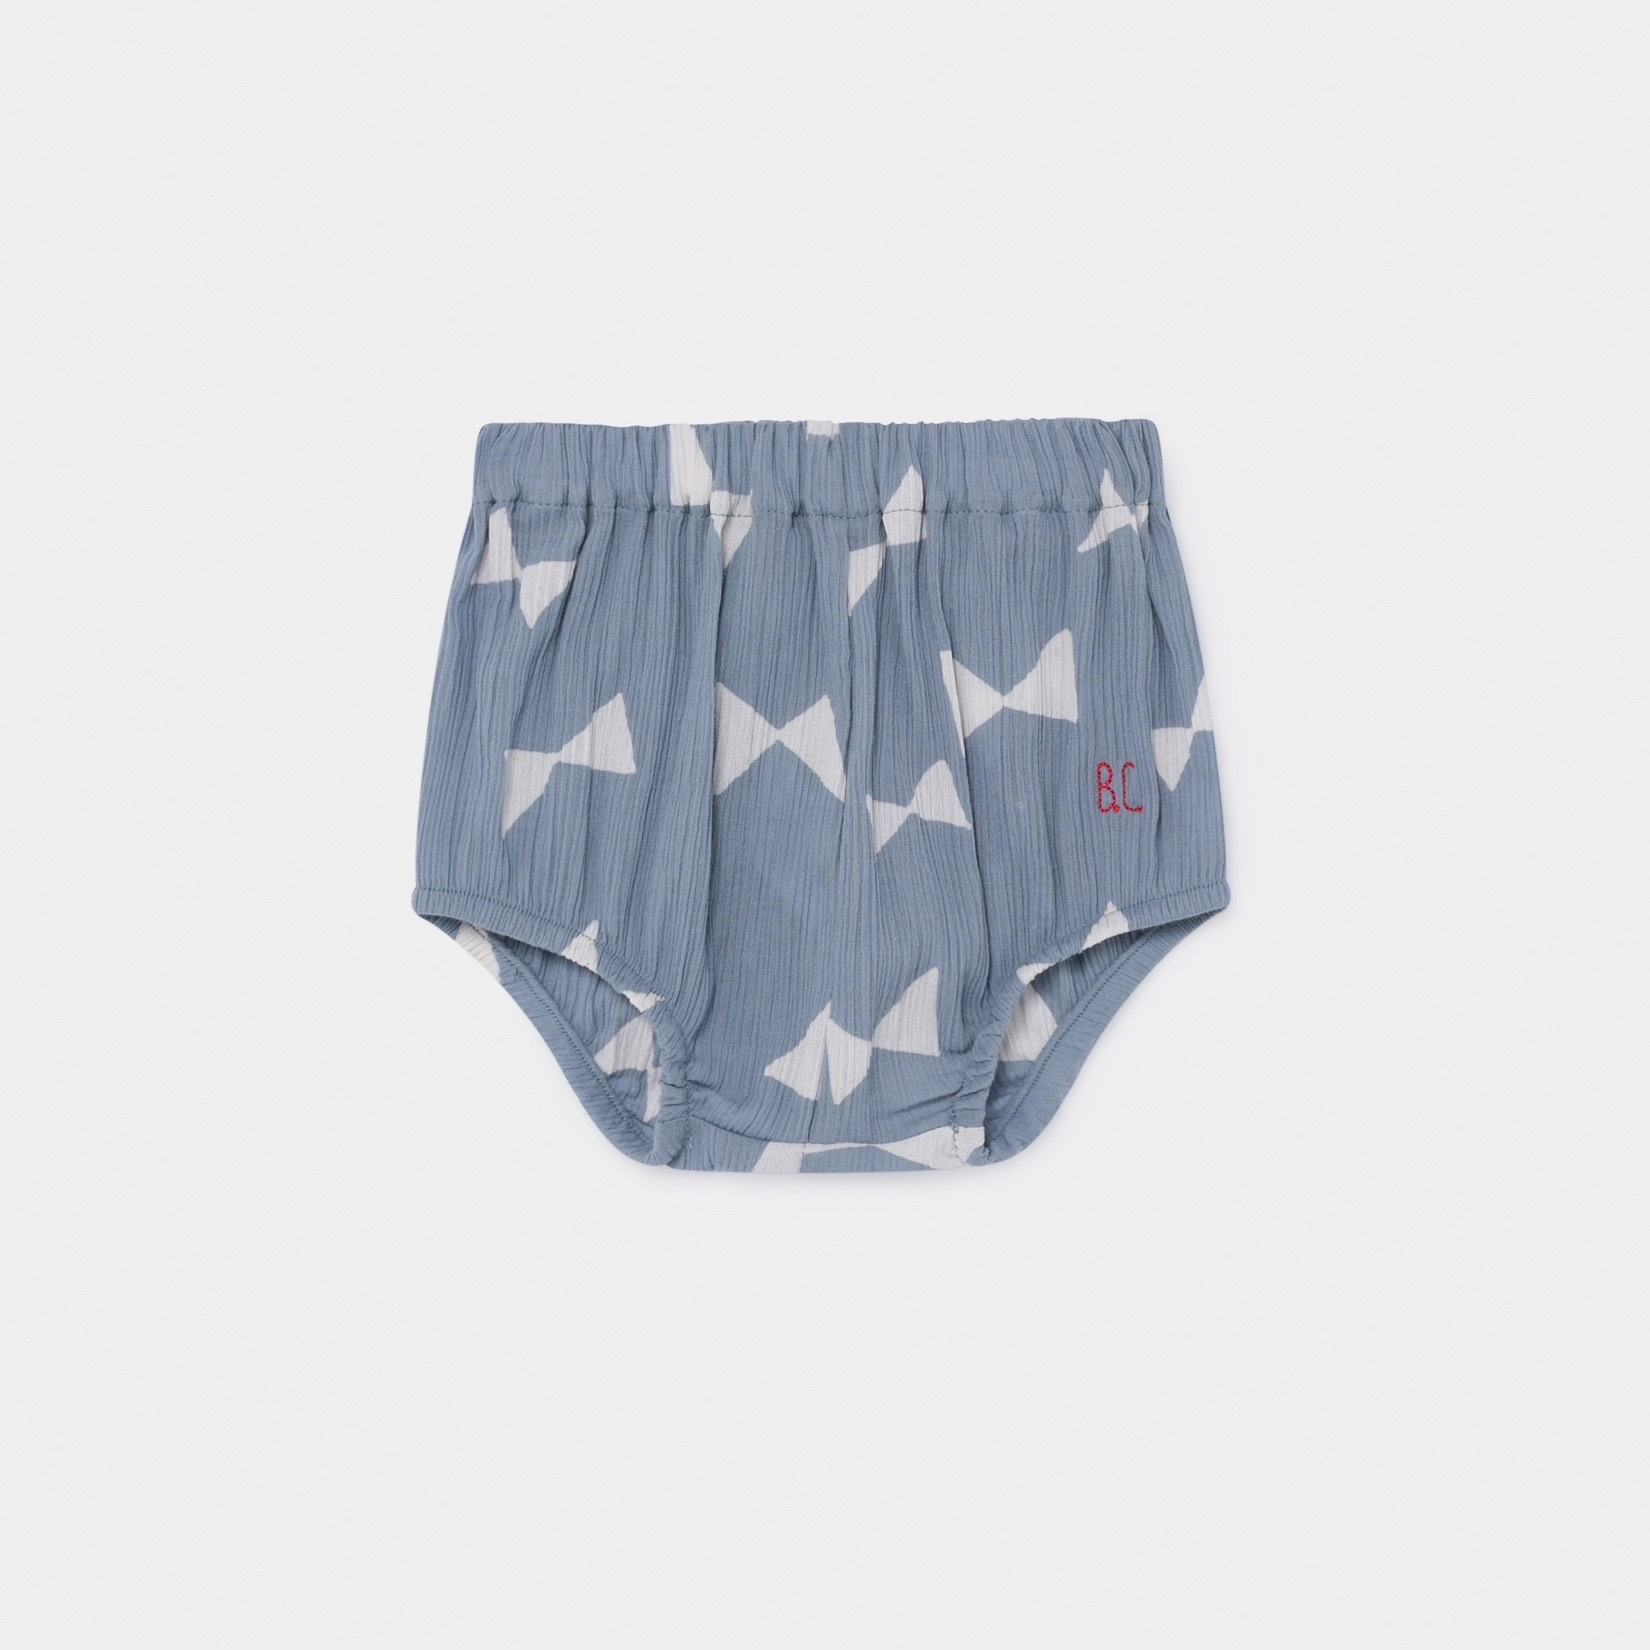 《BOBO CHOSES 2020SS》All Over Bow Bloomer / 6-24M